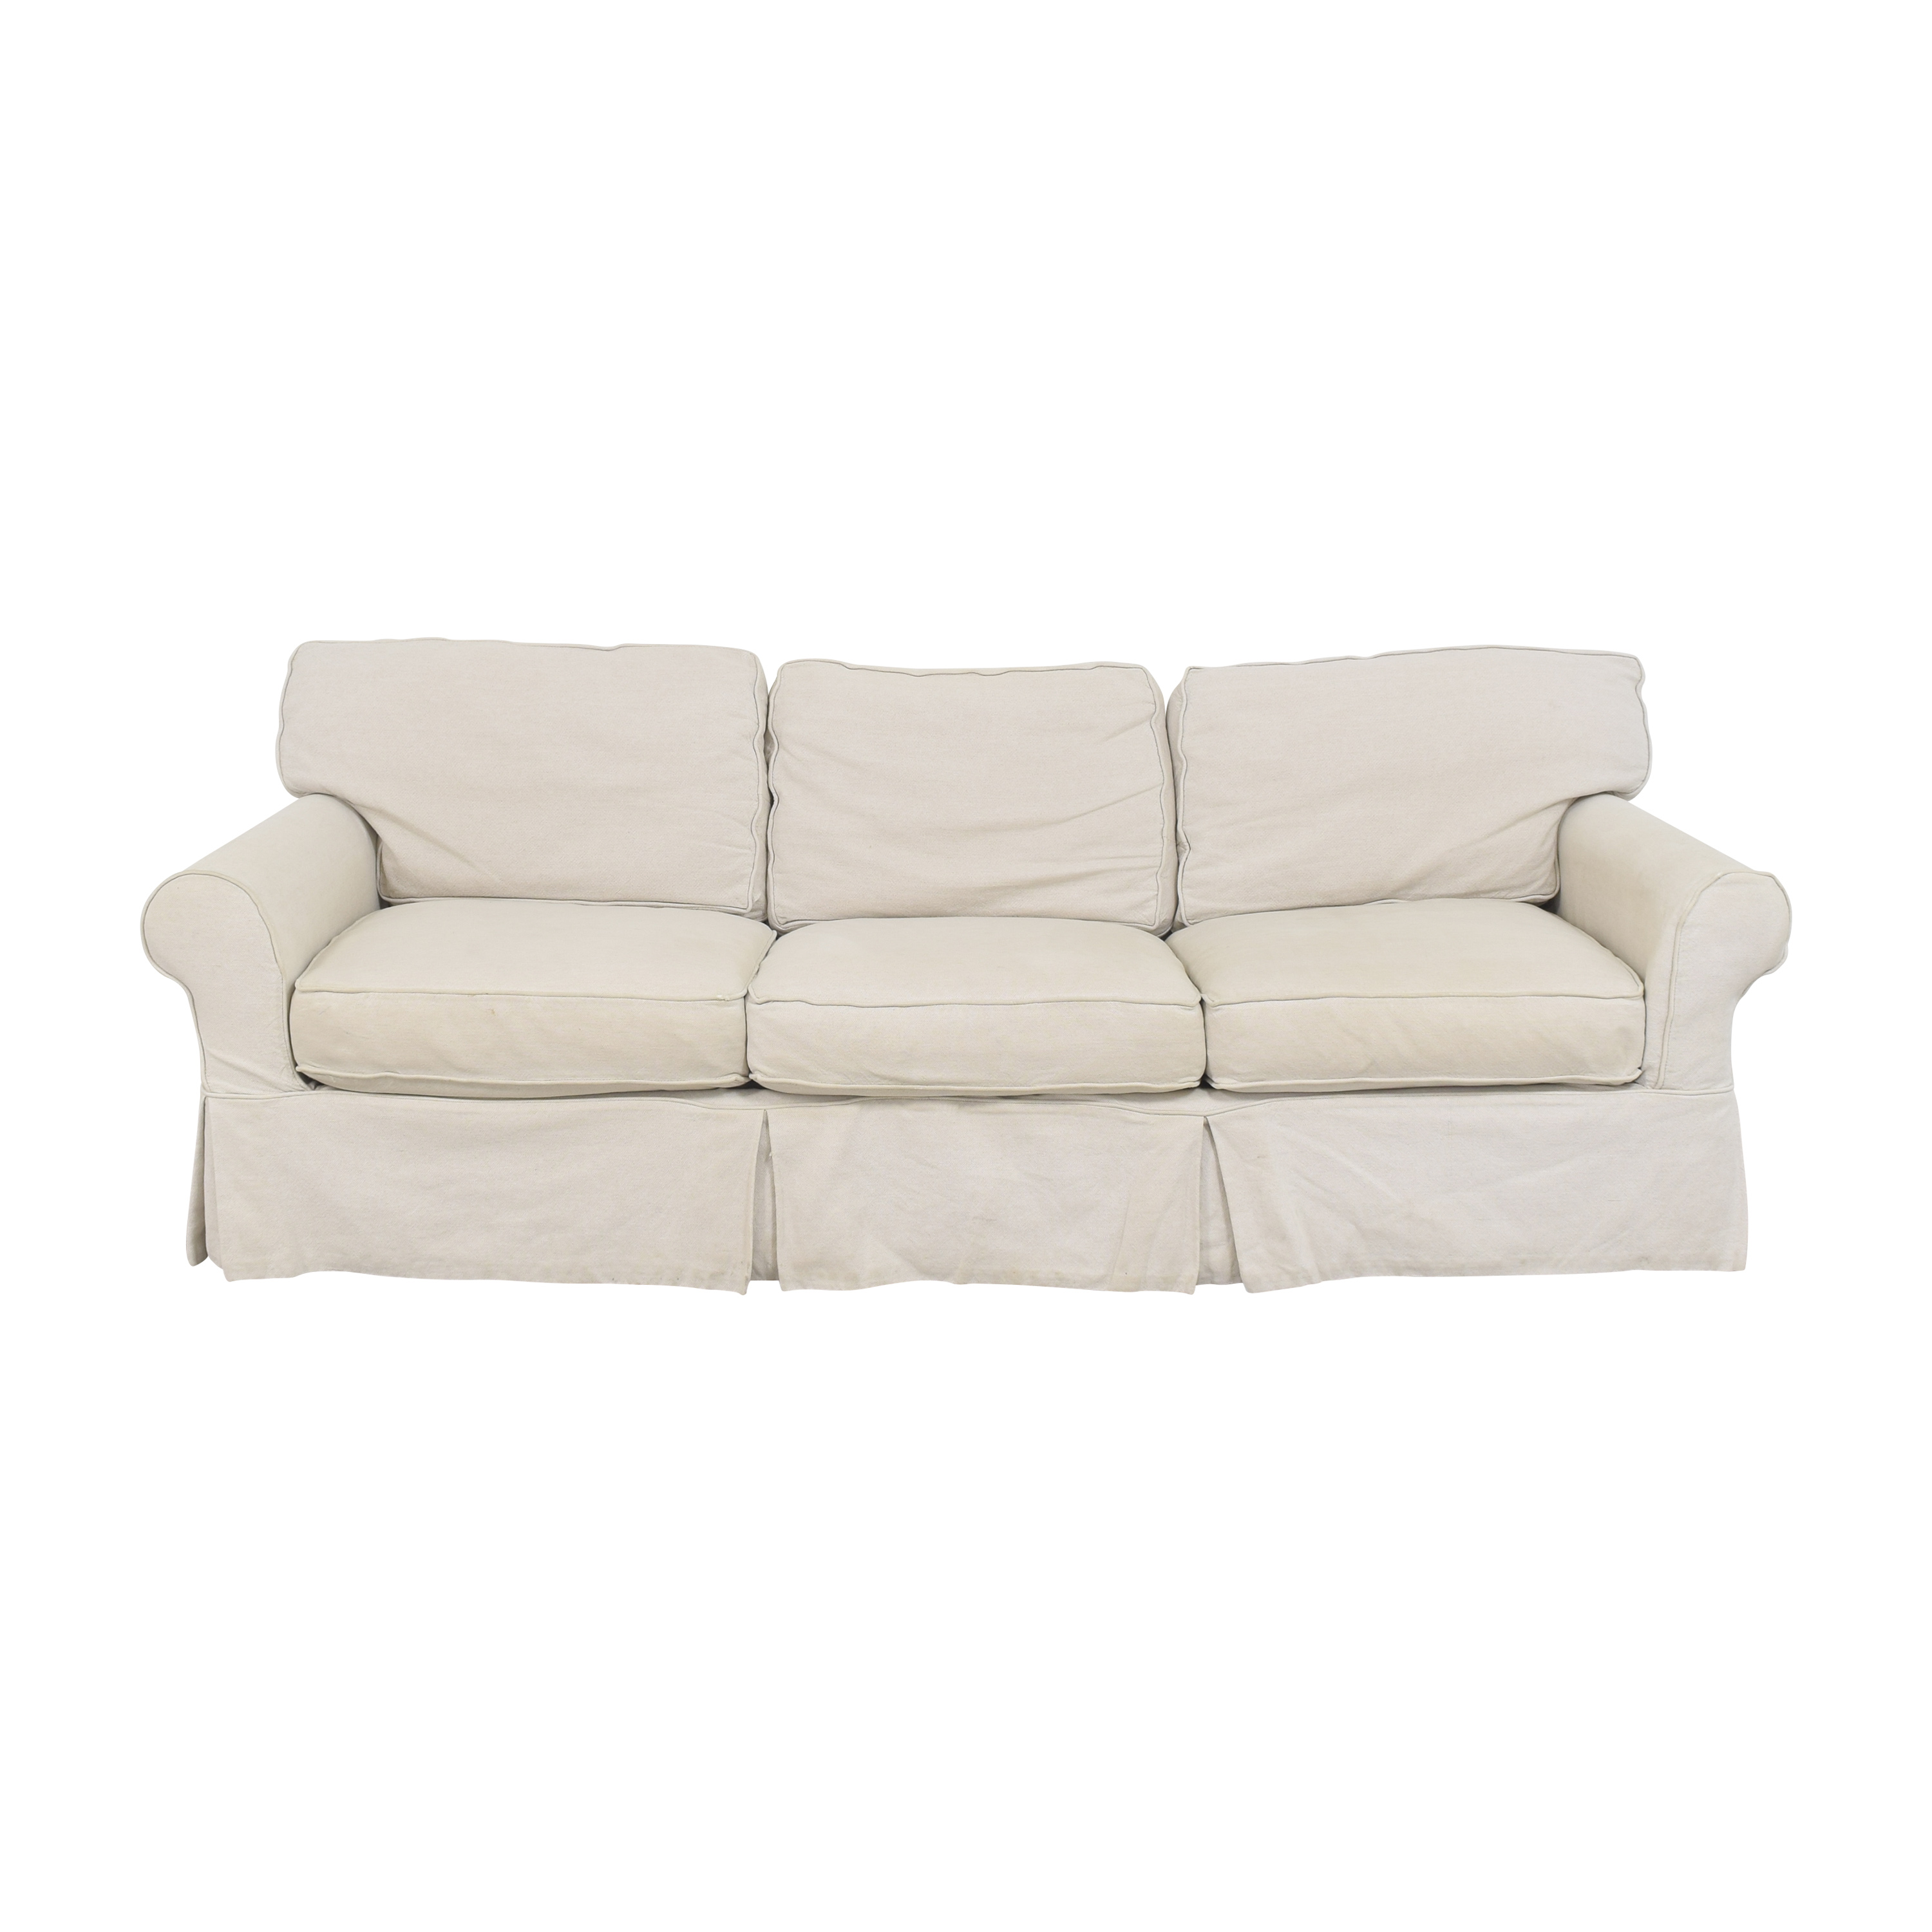 shop Crate & Barrel Slipcovered Roll Arm Sofa Crate & Barrel Classic Sofas